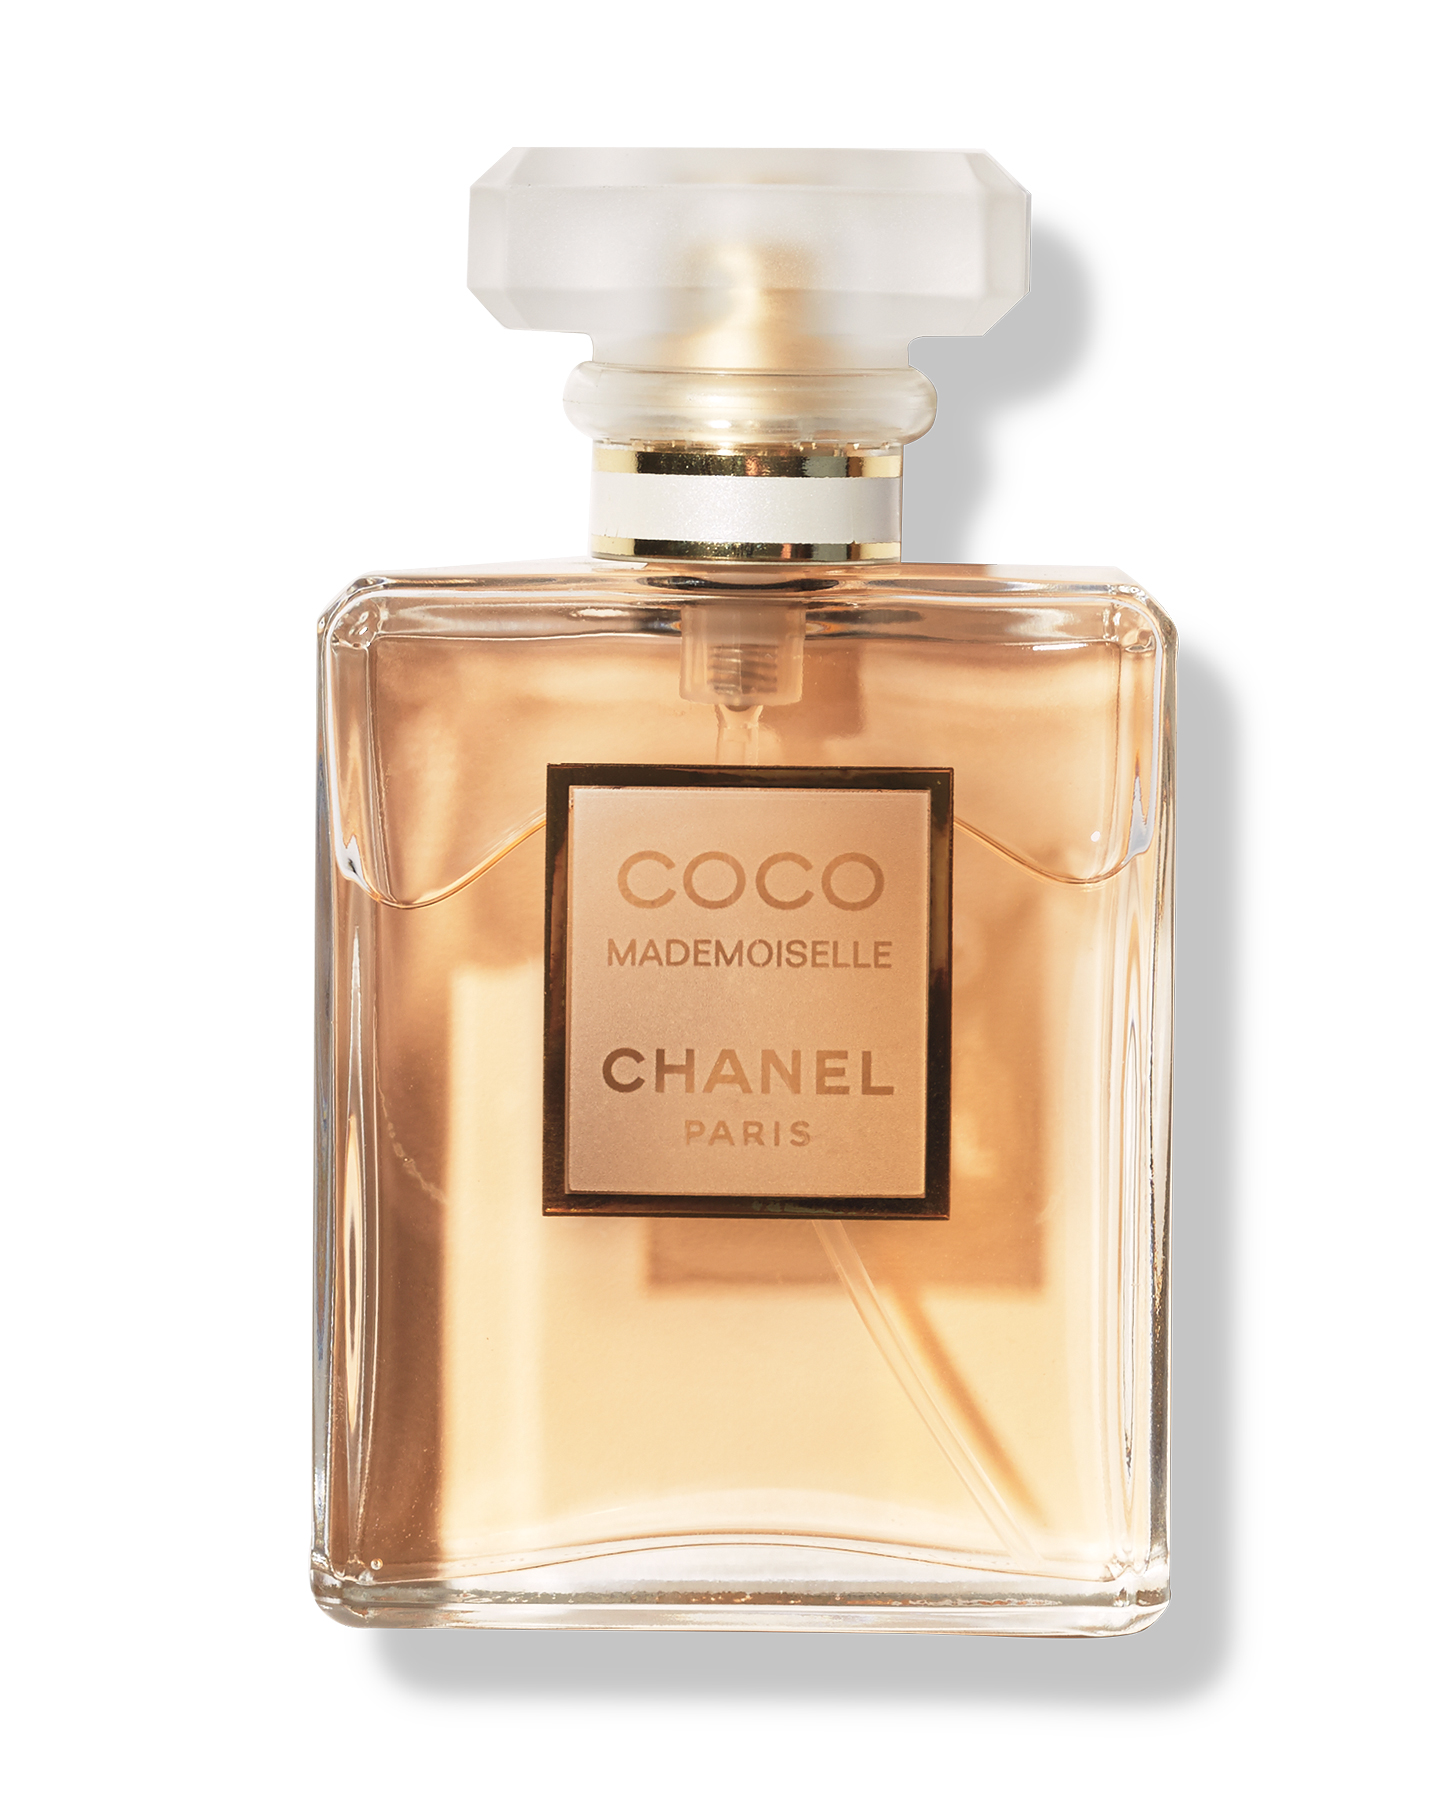 Chanel's Coco Mademoiselle